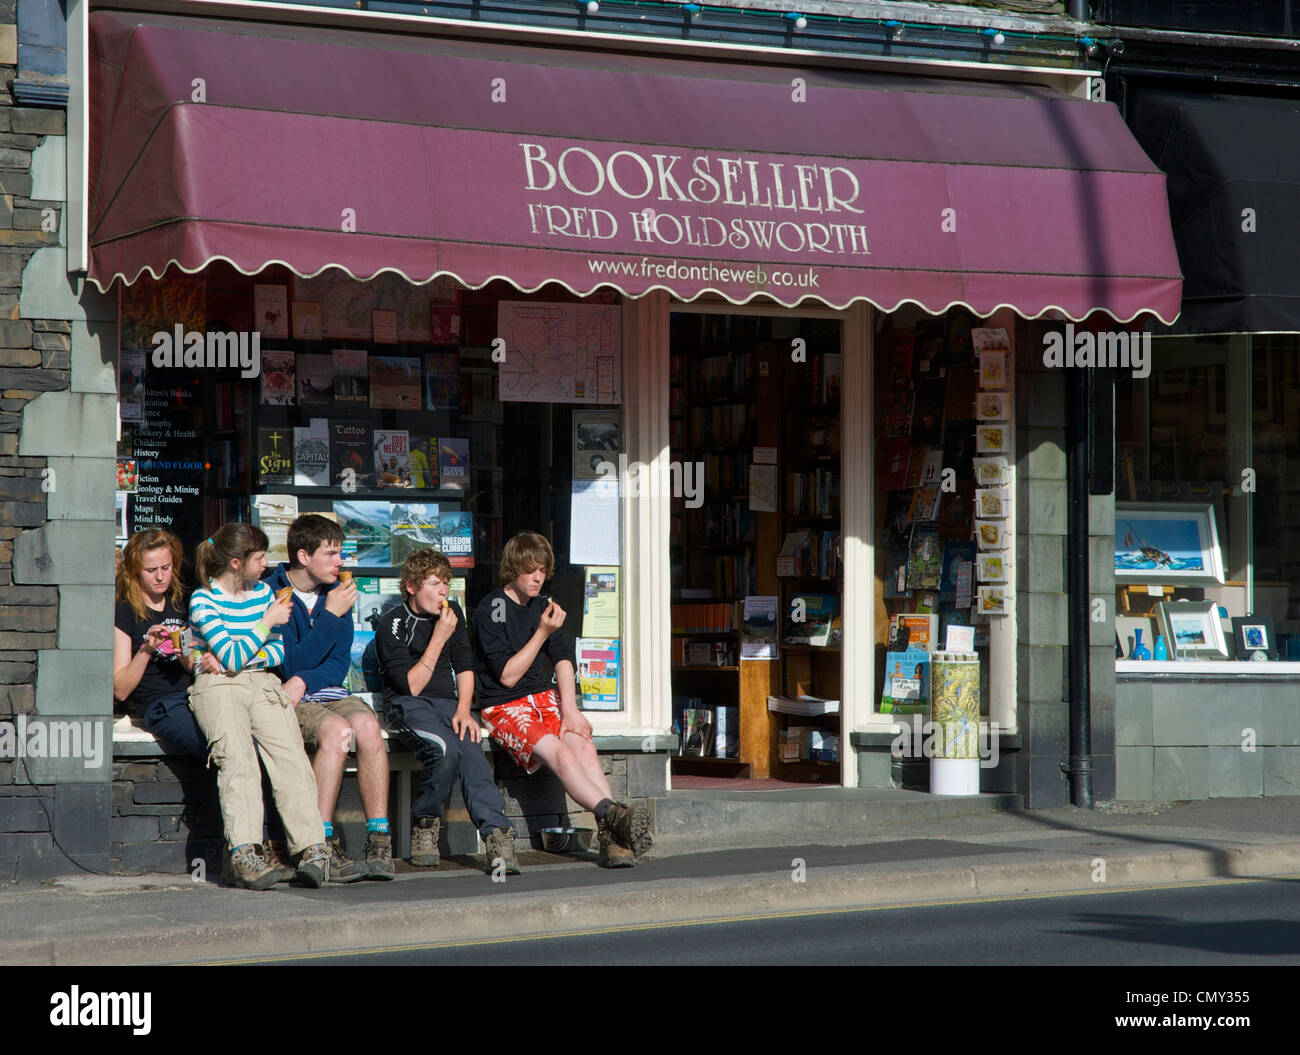 Five young people sitting outside a bookshop, eating ice creams, in the town of Ambleside, Cumbria, England UK - Stock Image